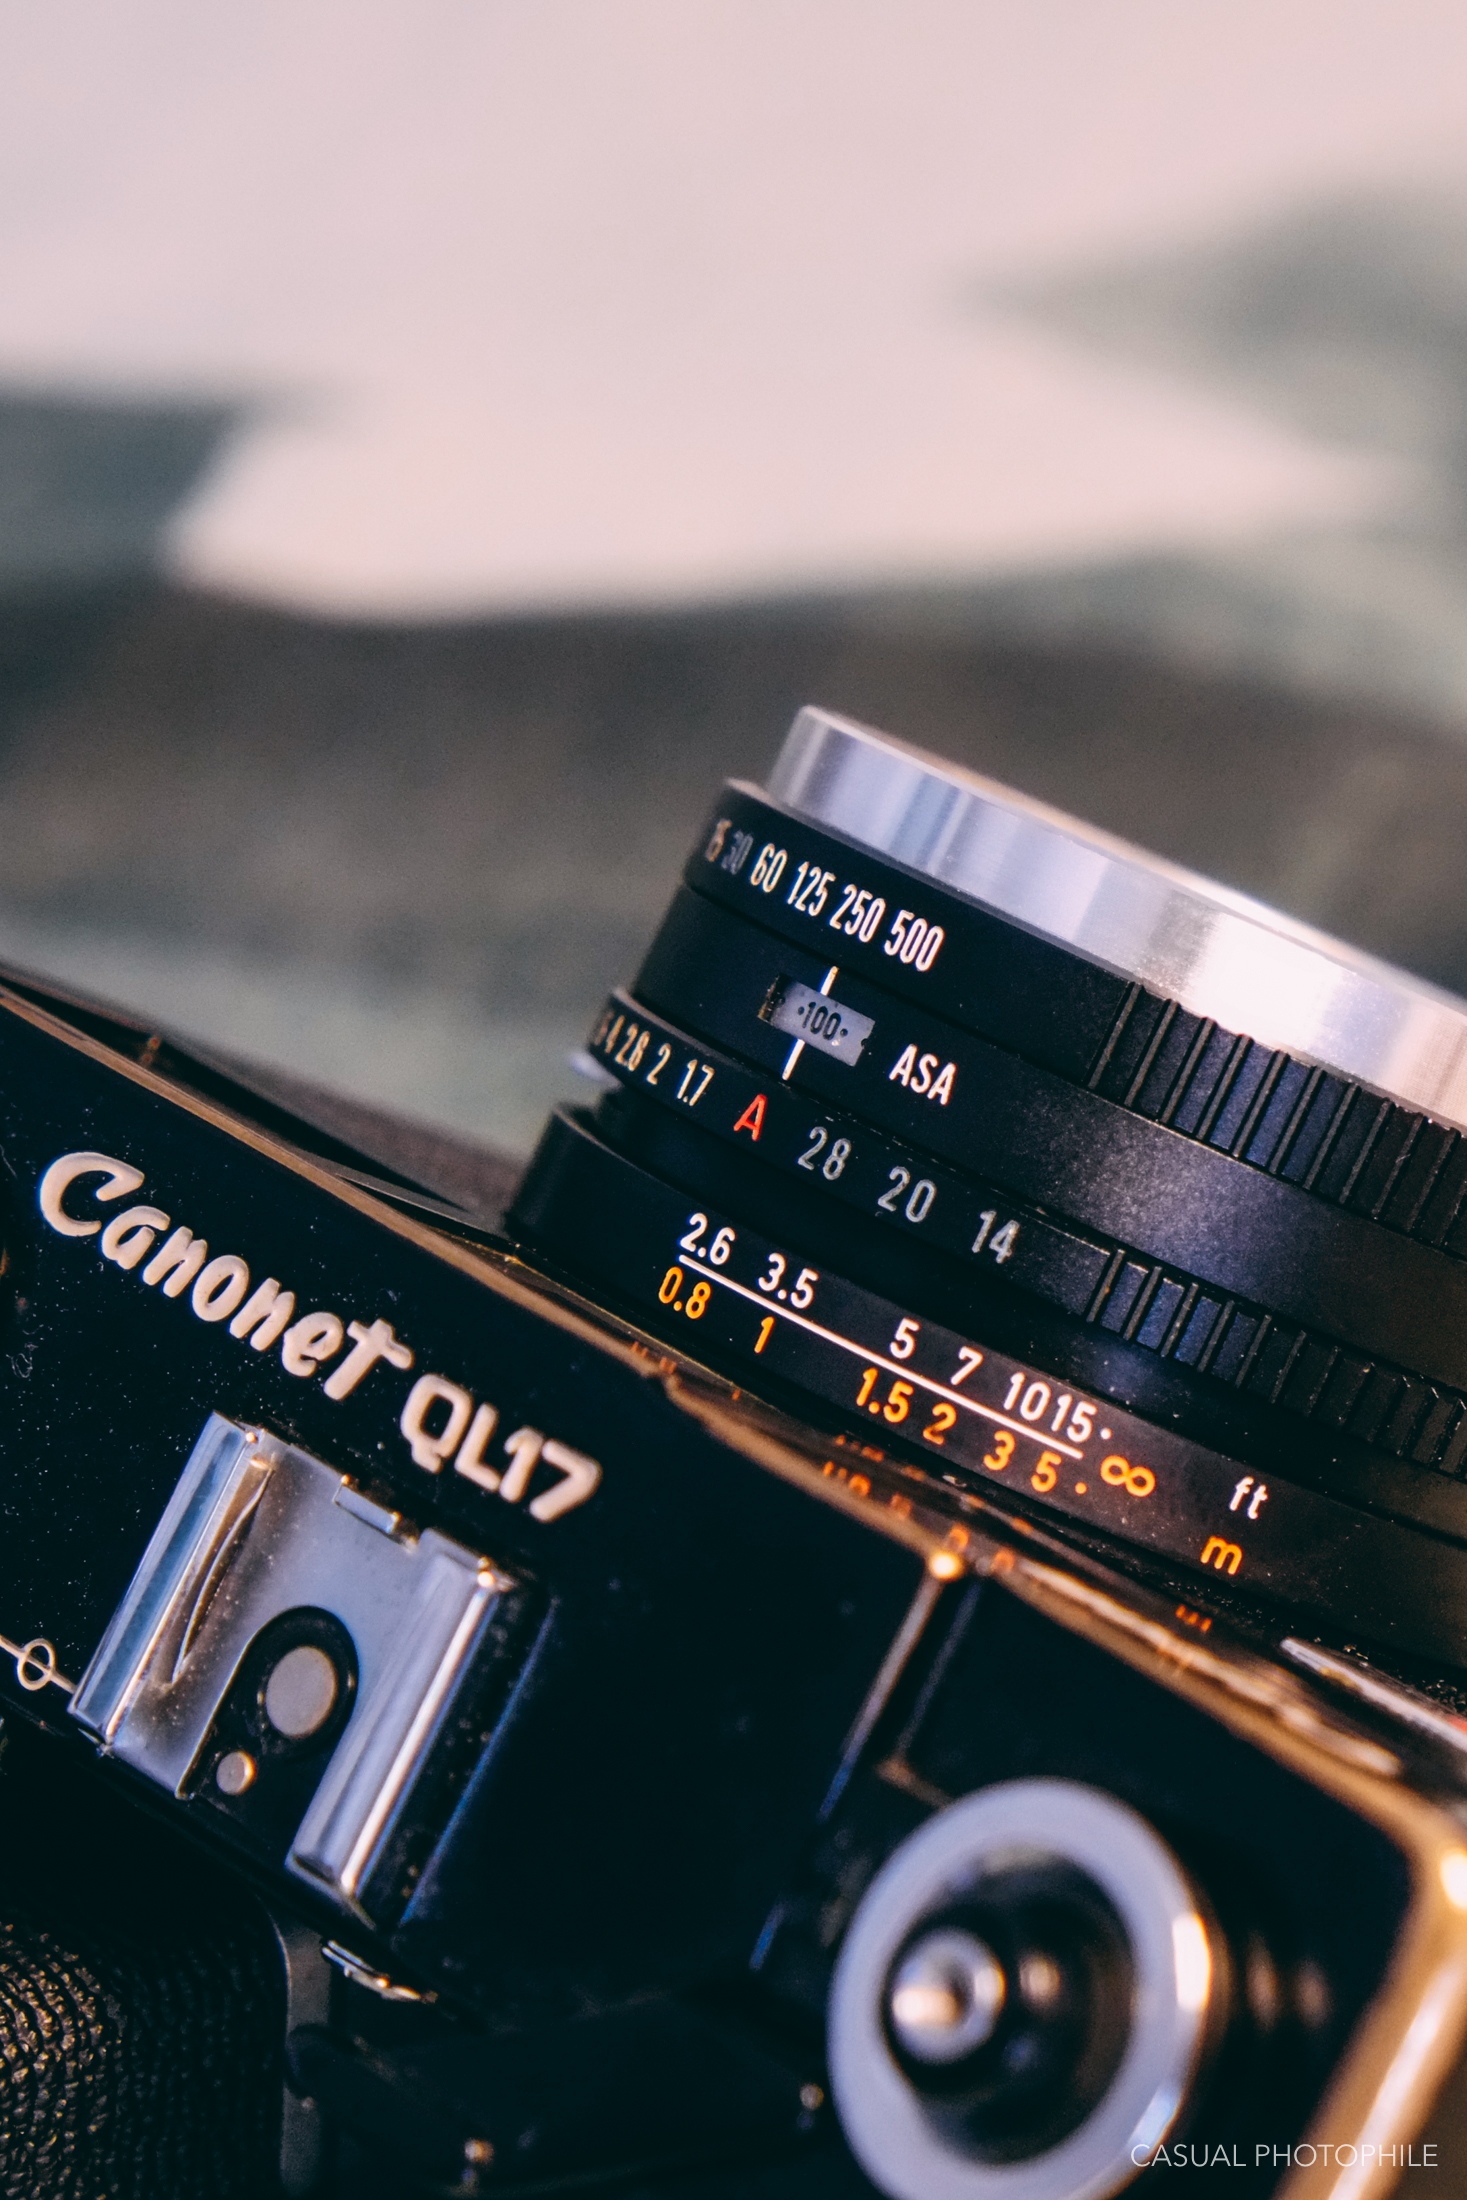 Canon's Canonet Rangefinder Does the Impossible - A Canon Camera